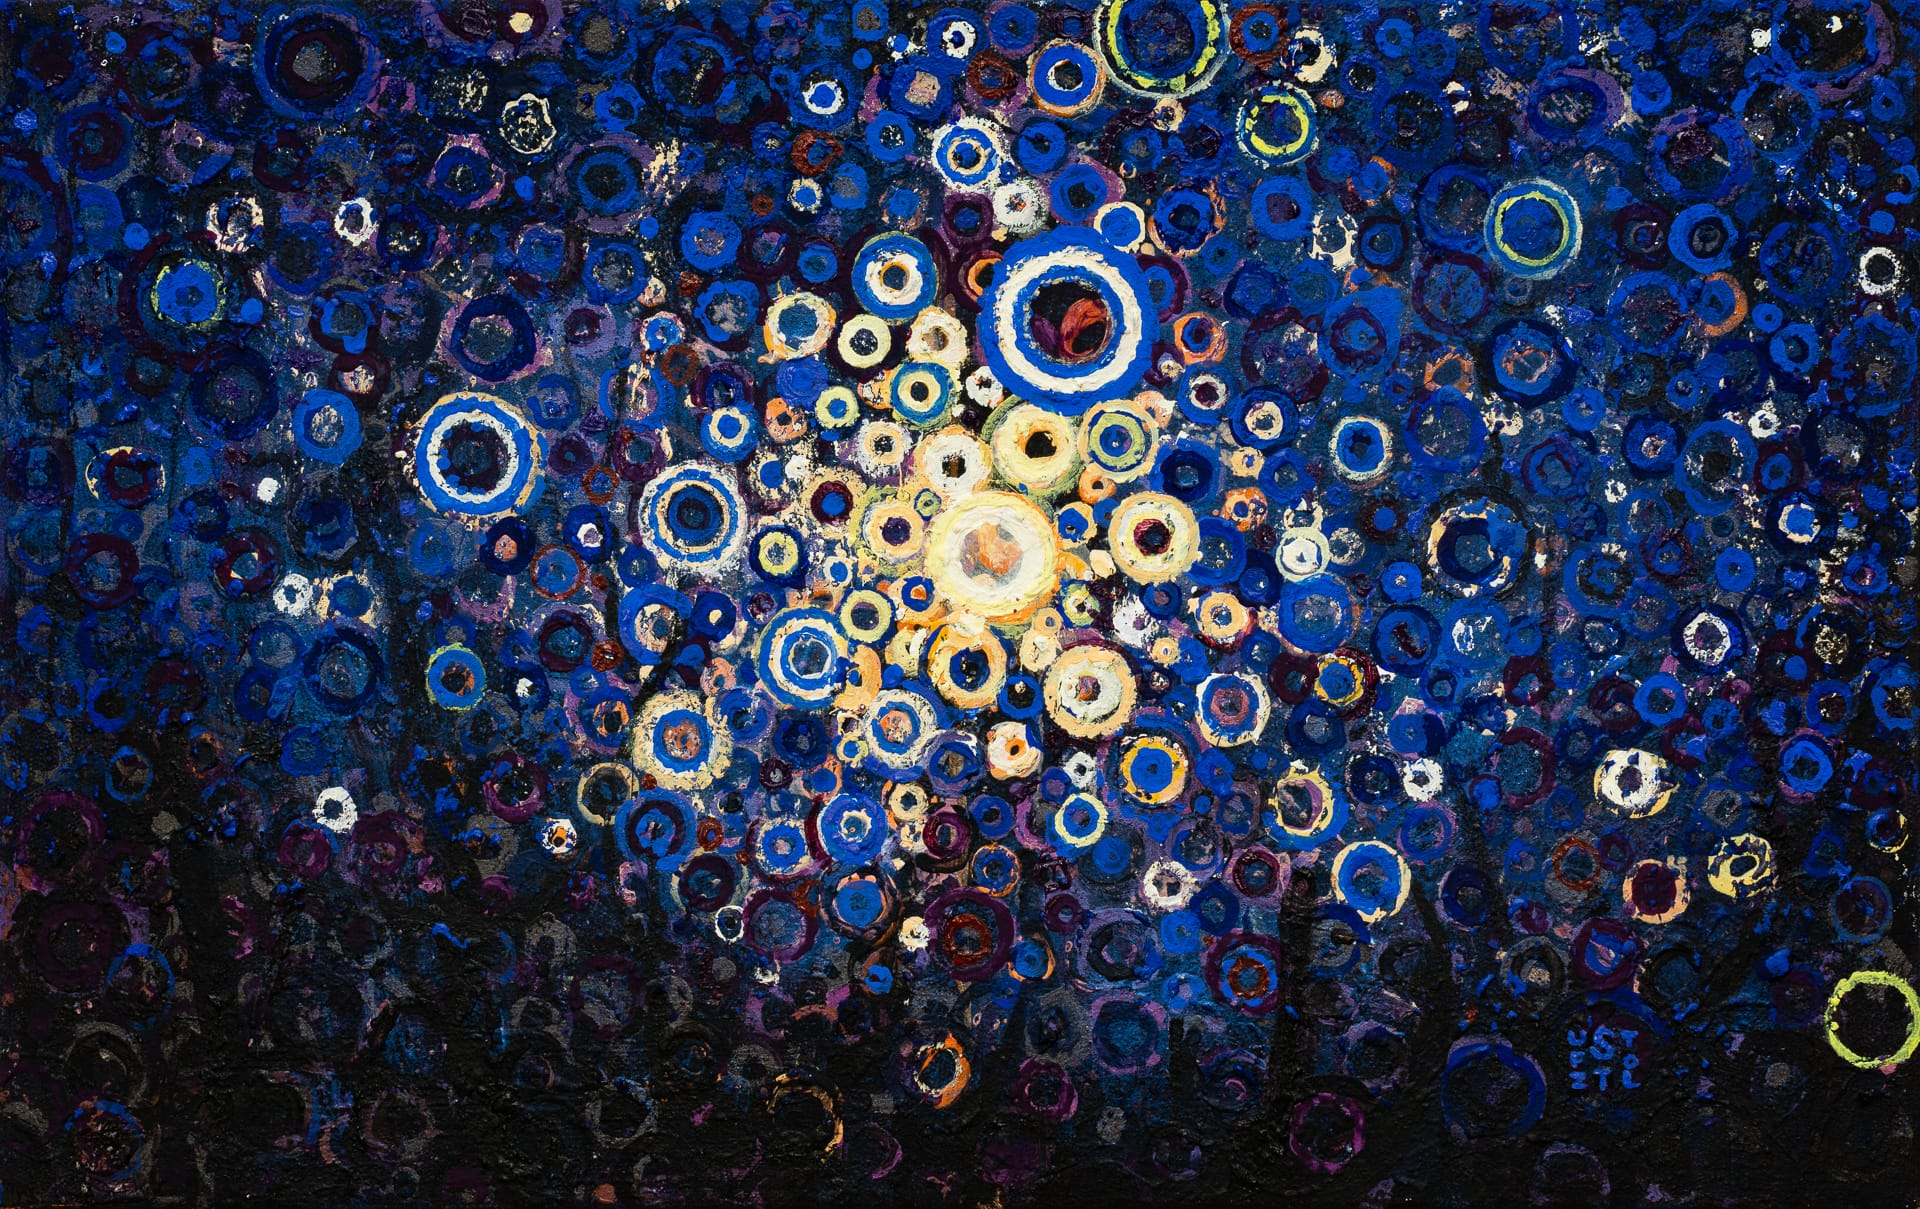 Gently Sparkling   Inspired by Traditional Japanese Sparklers called Senko Hanabi   Old Light by Randall Stoltzfus   12 by 19 inches   Acrylic dispersion on polymer canvas